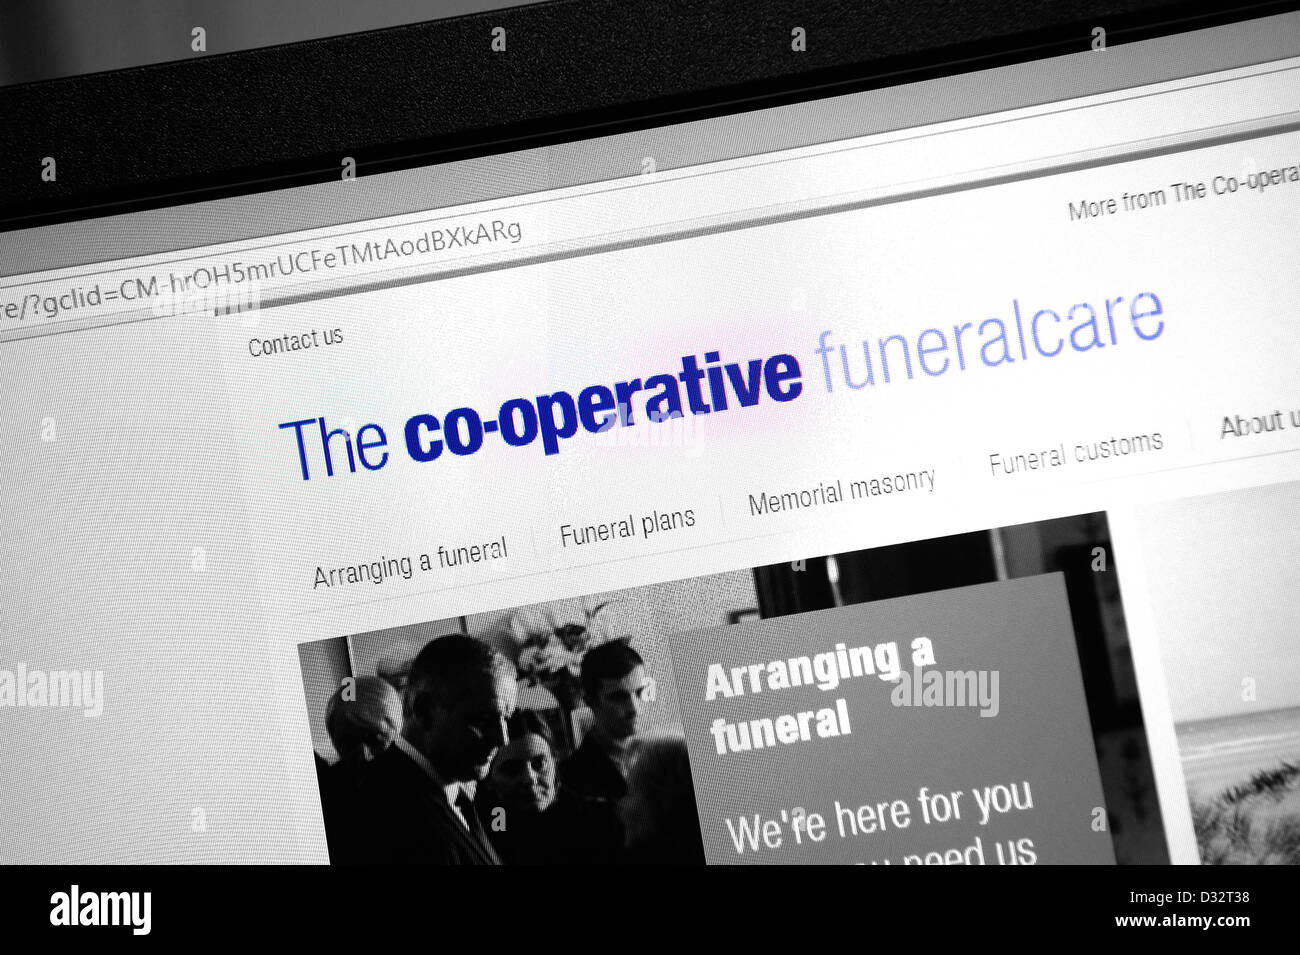 The cooperative funeral care web page - Stock Image